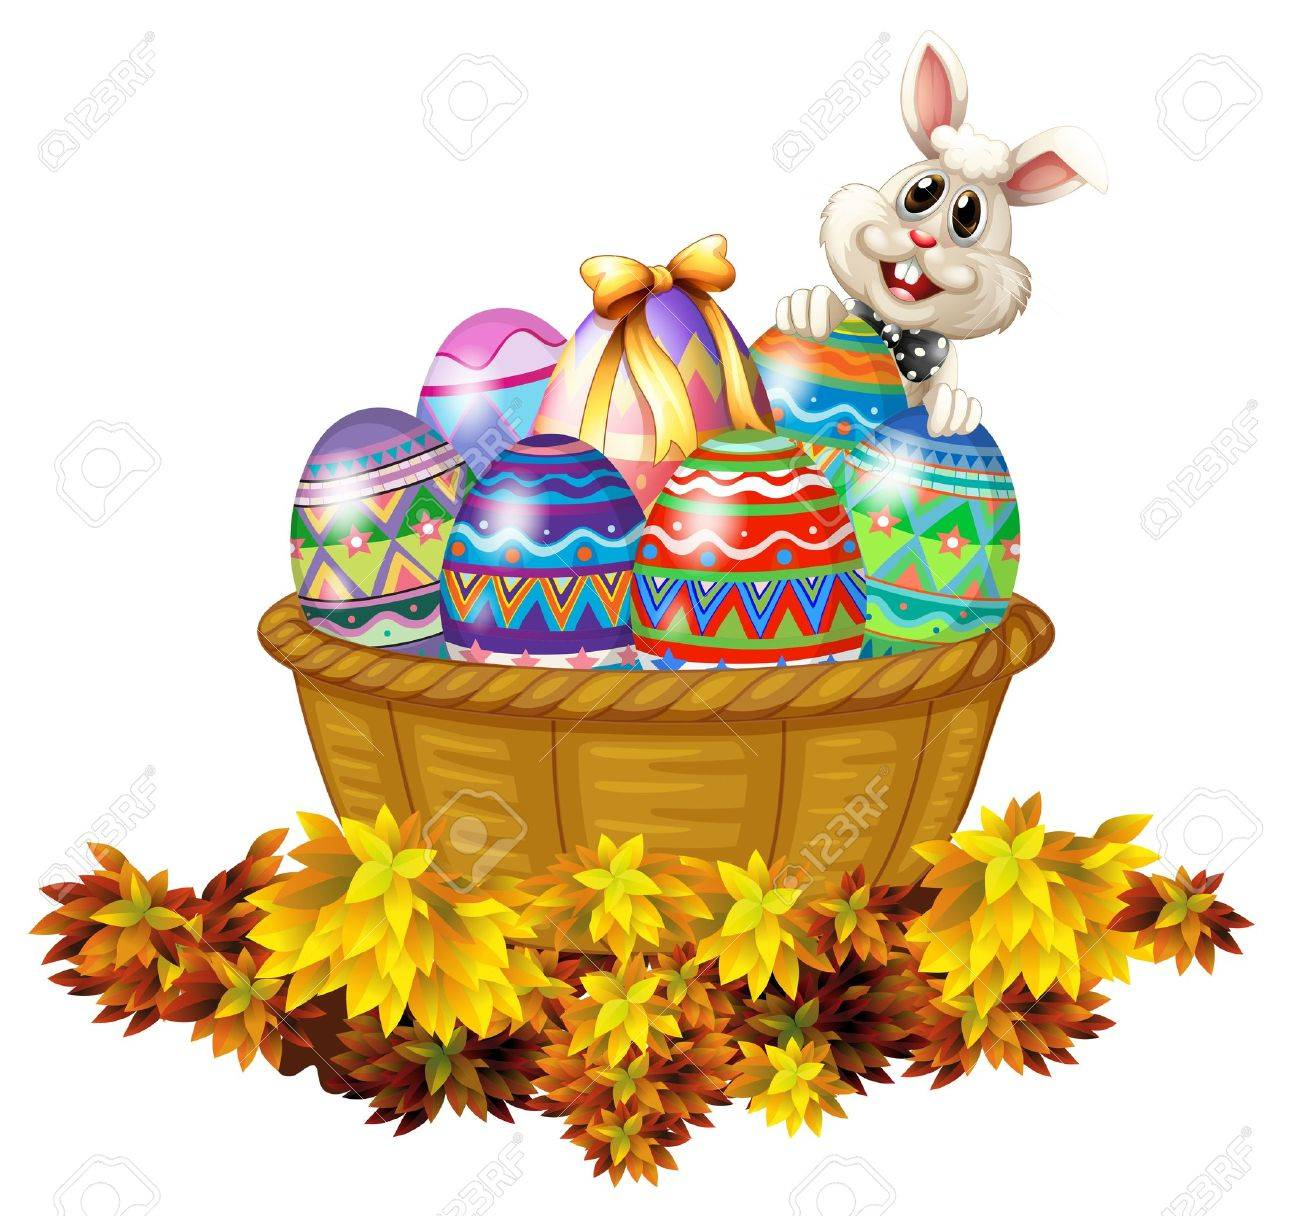 illustration of a basket full of easter eggs and a bunny on a